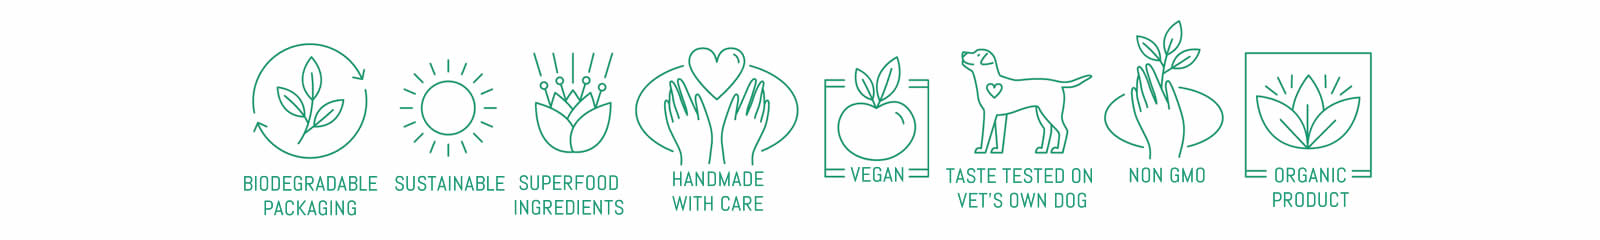 vegan dog food symbols -sustainable, organic, non GMO